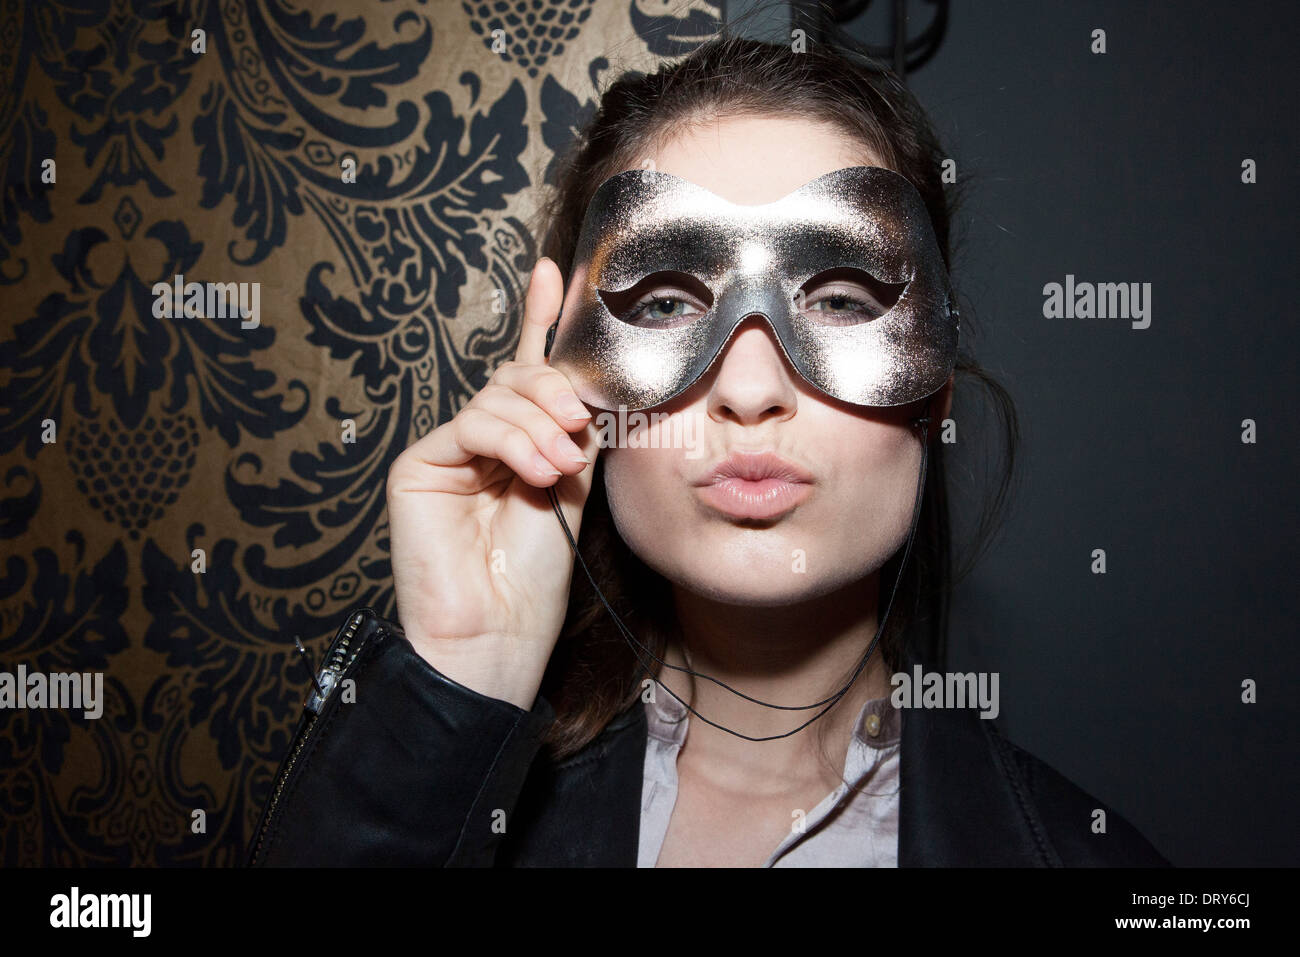 Woman wearing party mask, pursing lips, portrait - Stock Image